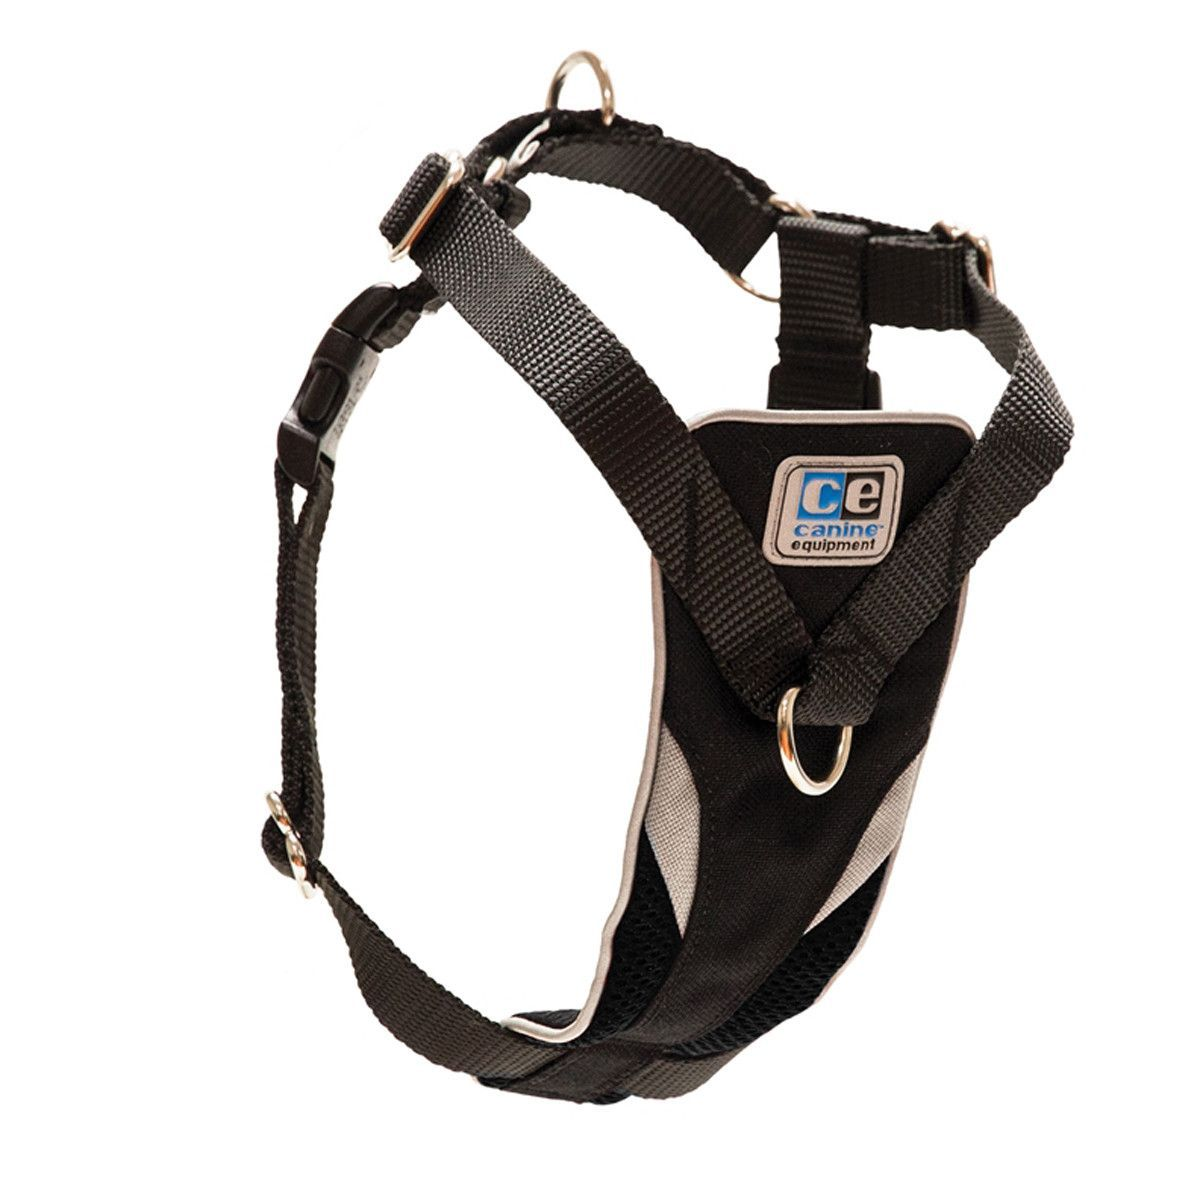 Ultimate Control Dog Harness by Canine Equipment - Black